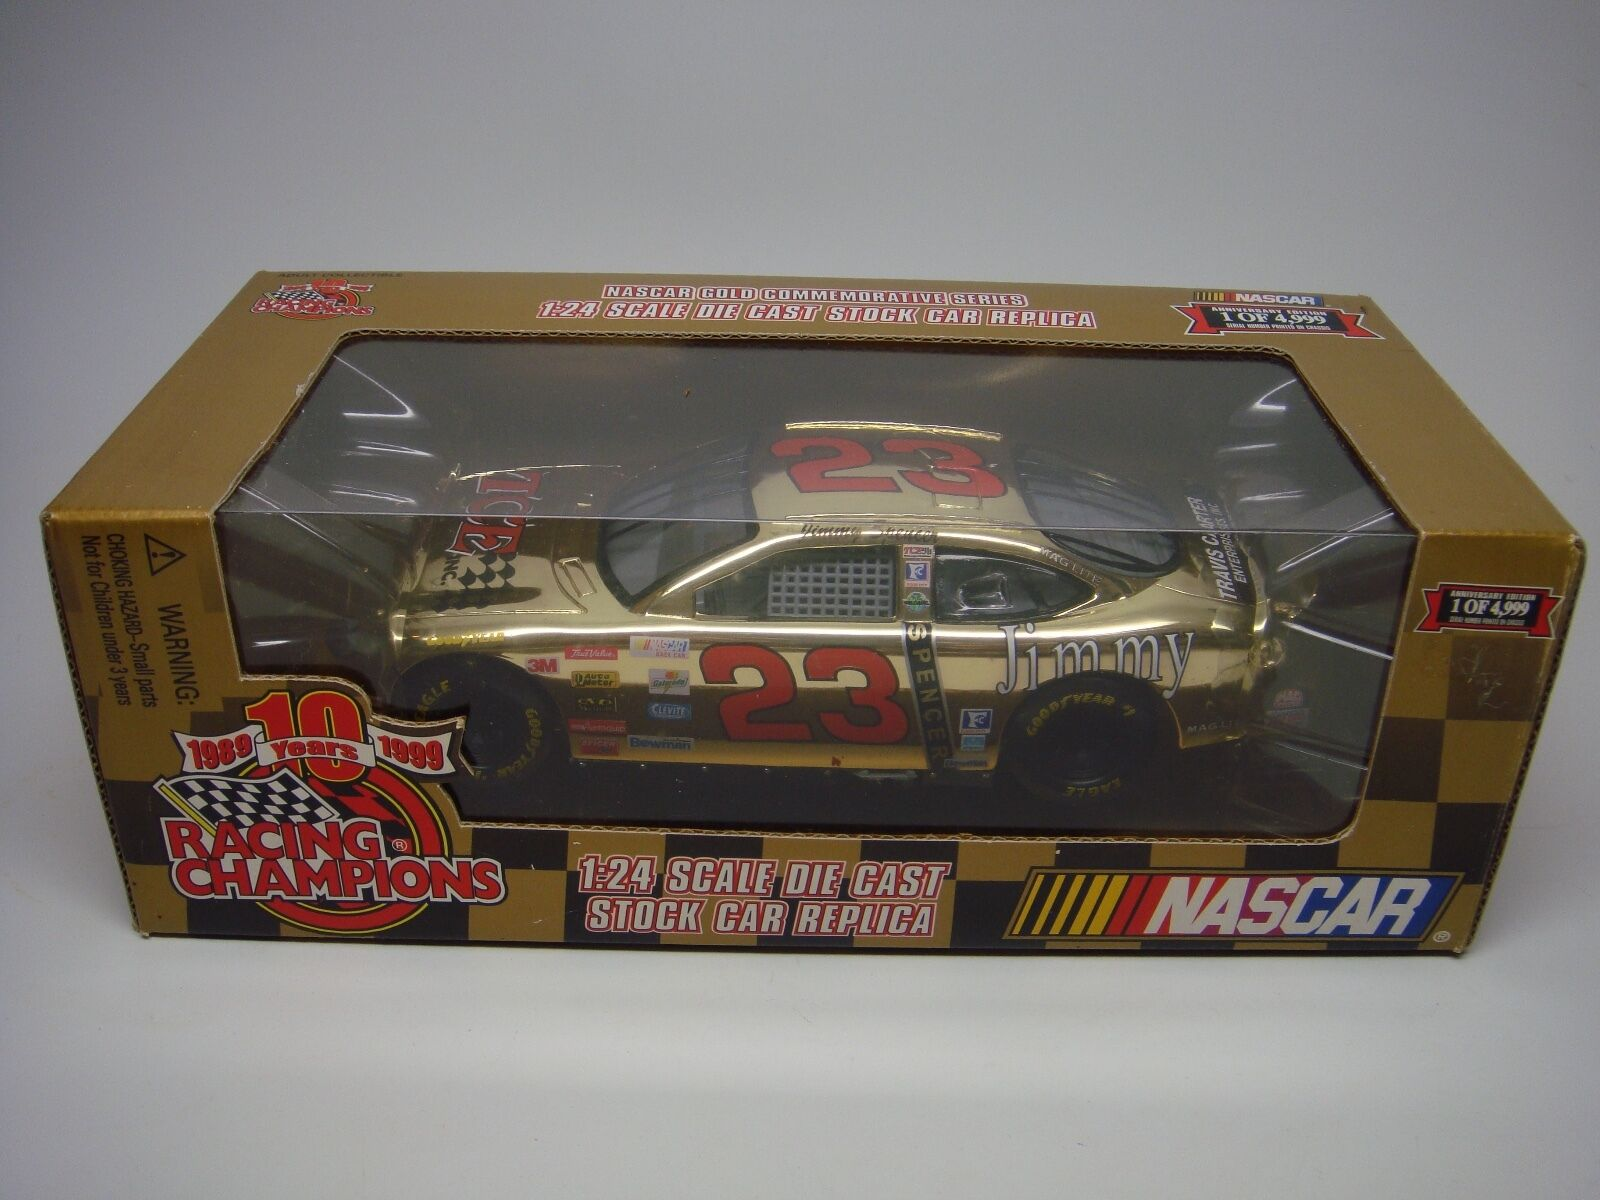 RACING CHAMPIONS-NASCAR-gold SERIES-(1989-1999 10 YEARS)- 24 SCALE